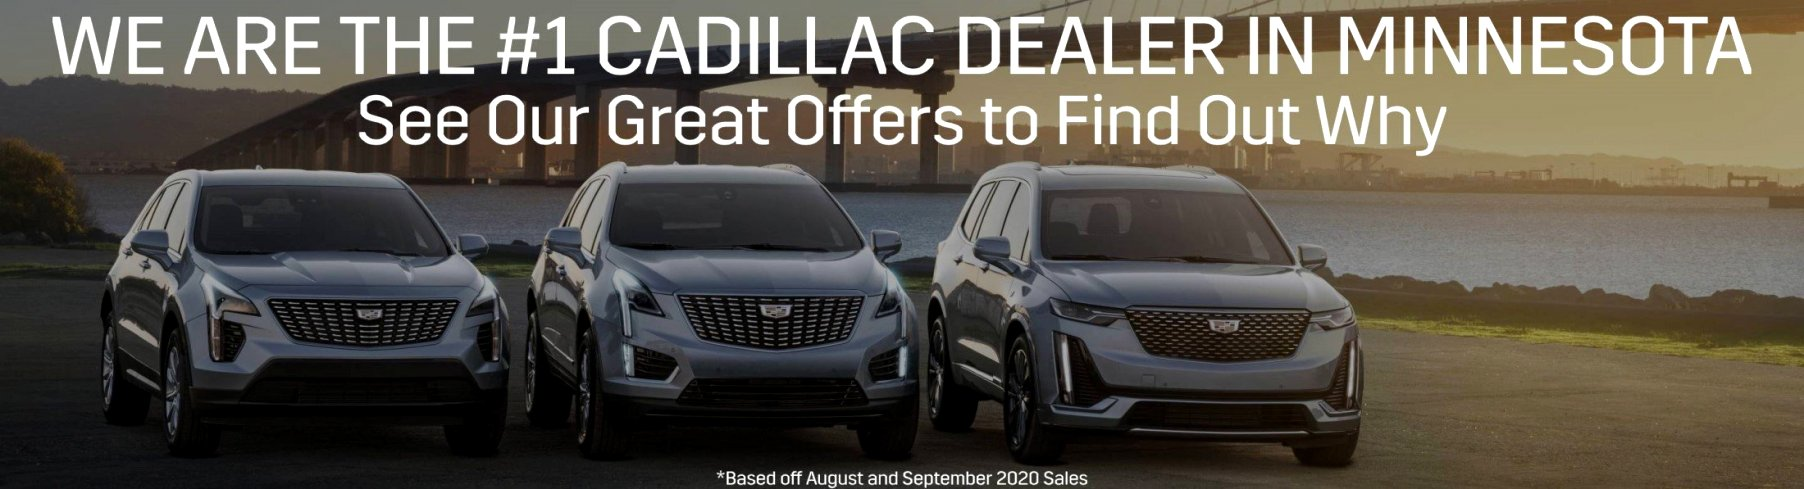 2020 cadillac incentives First Drive